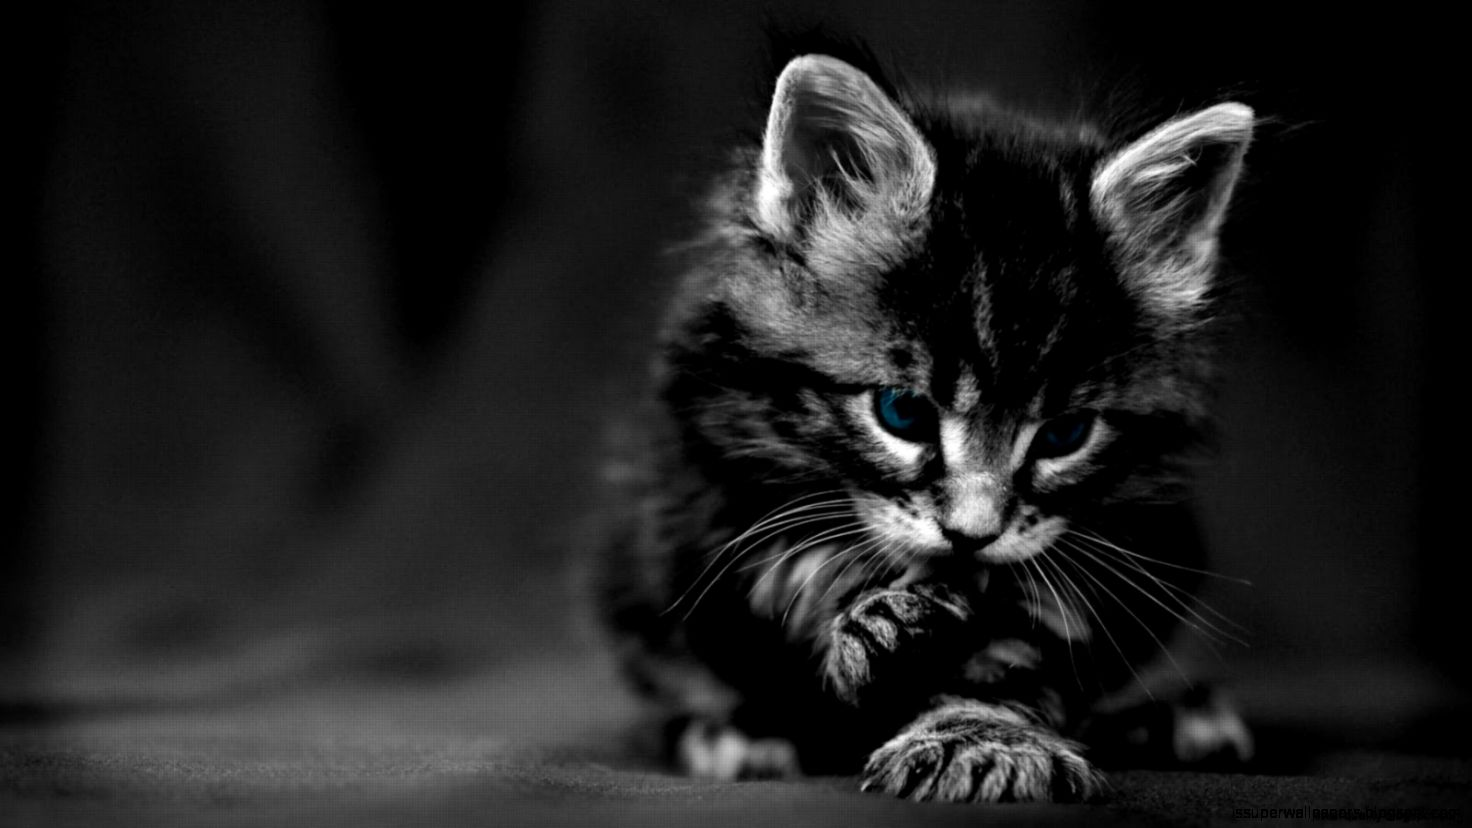 1080p Black And White Wallpaper Hd Black And White Black Kitten